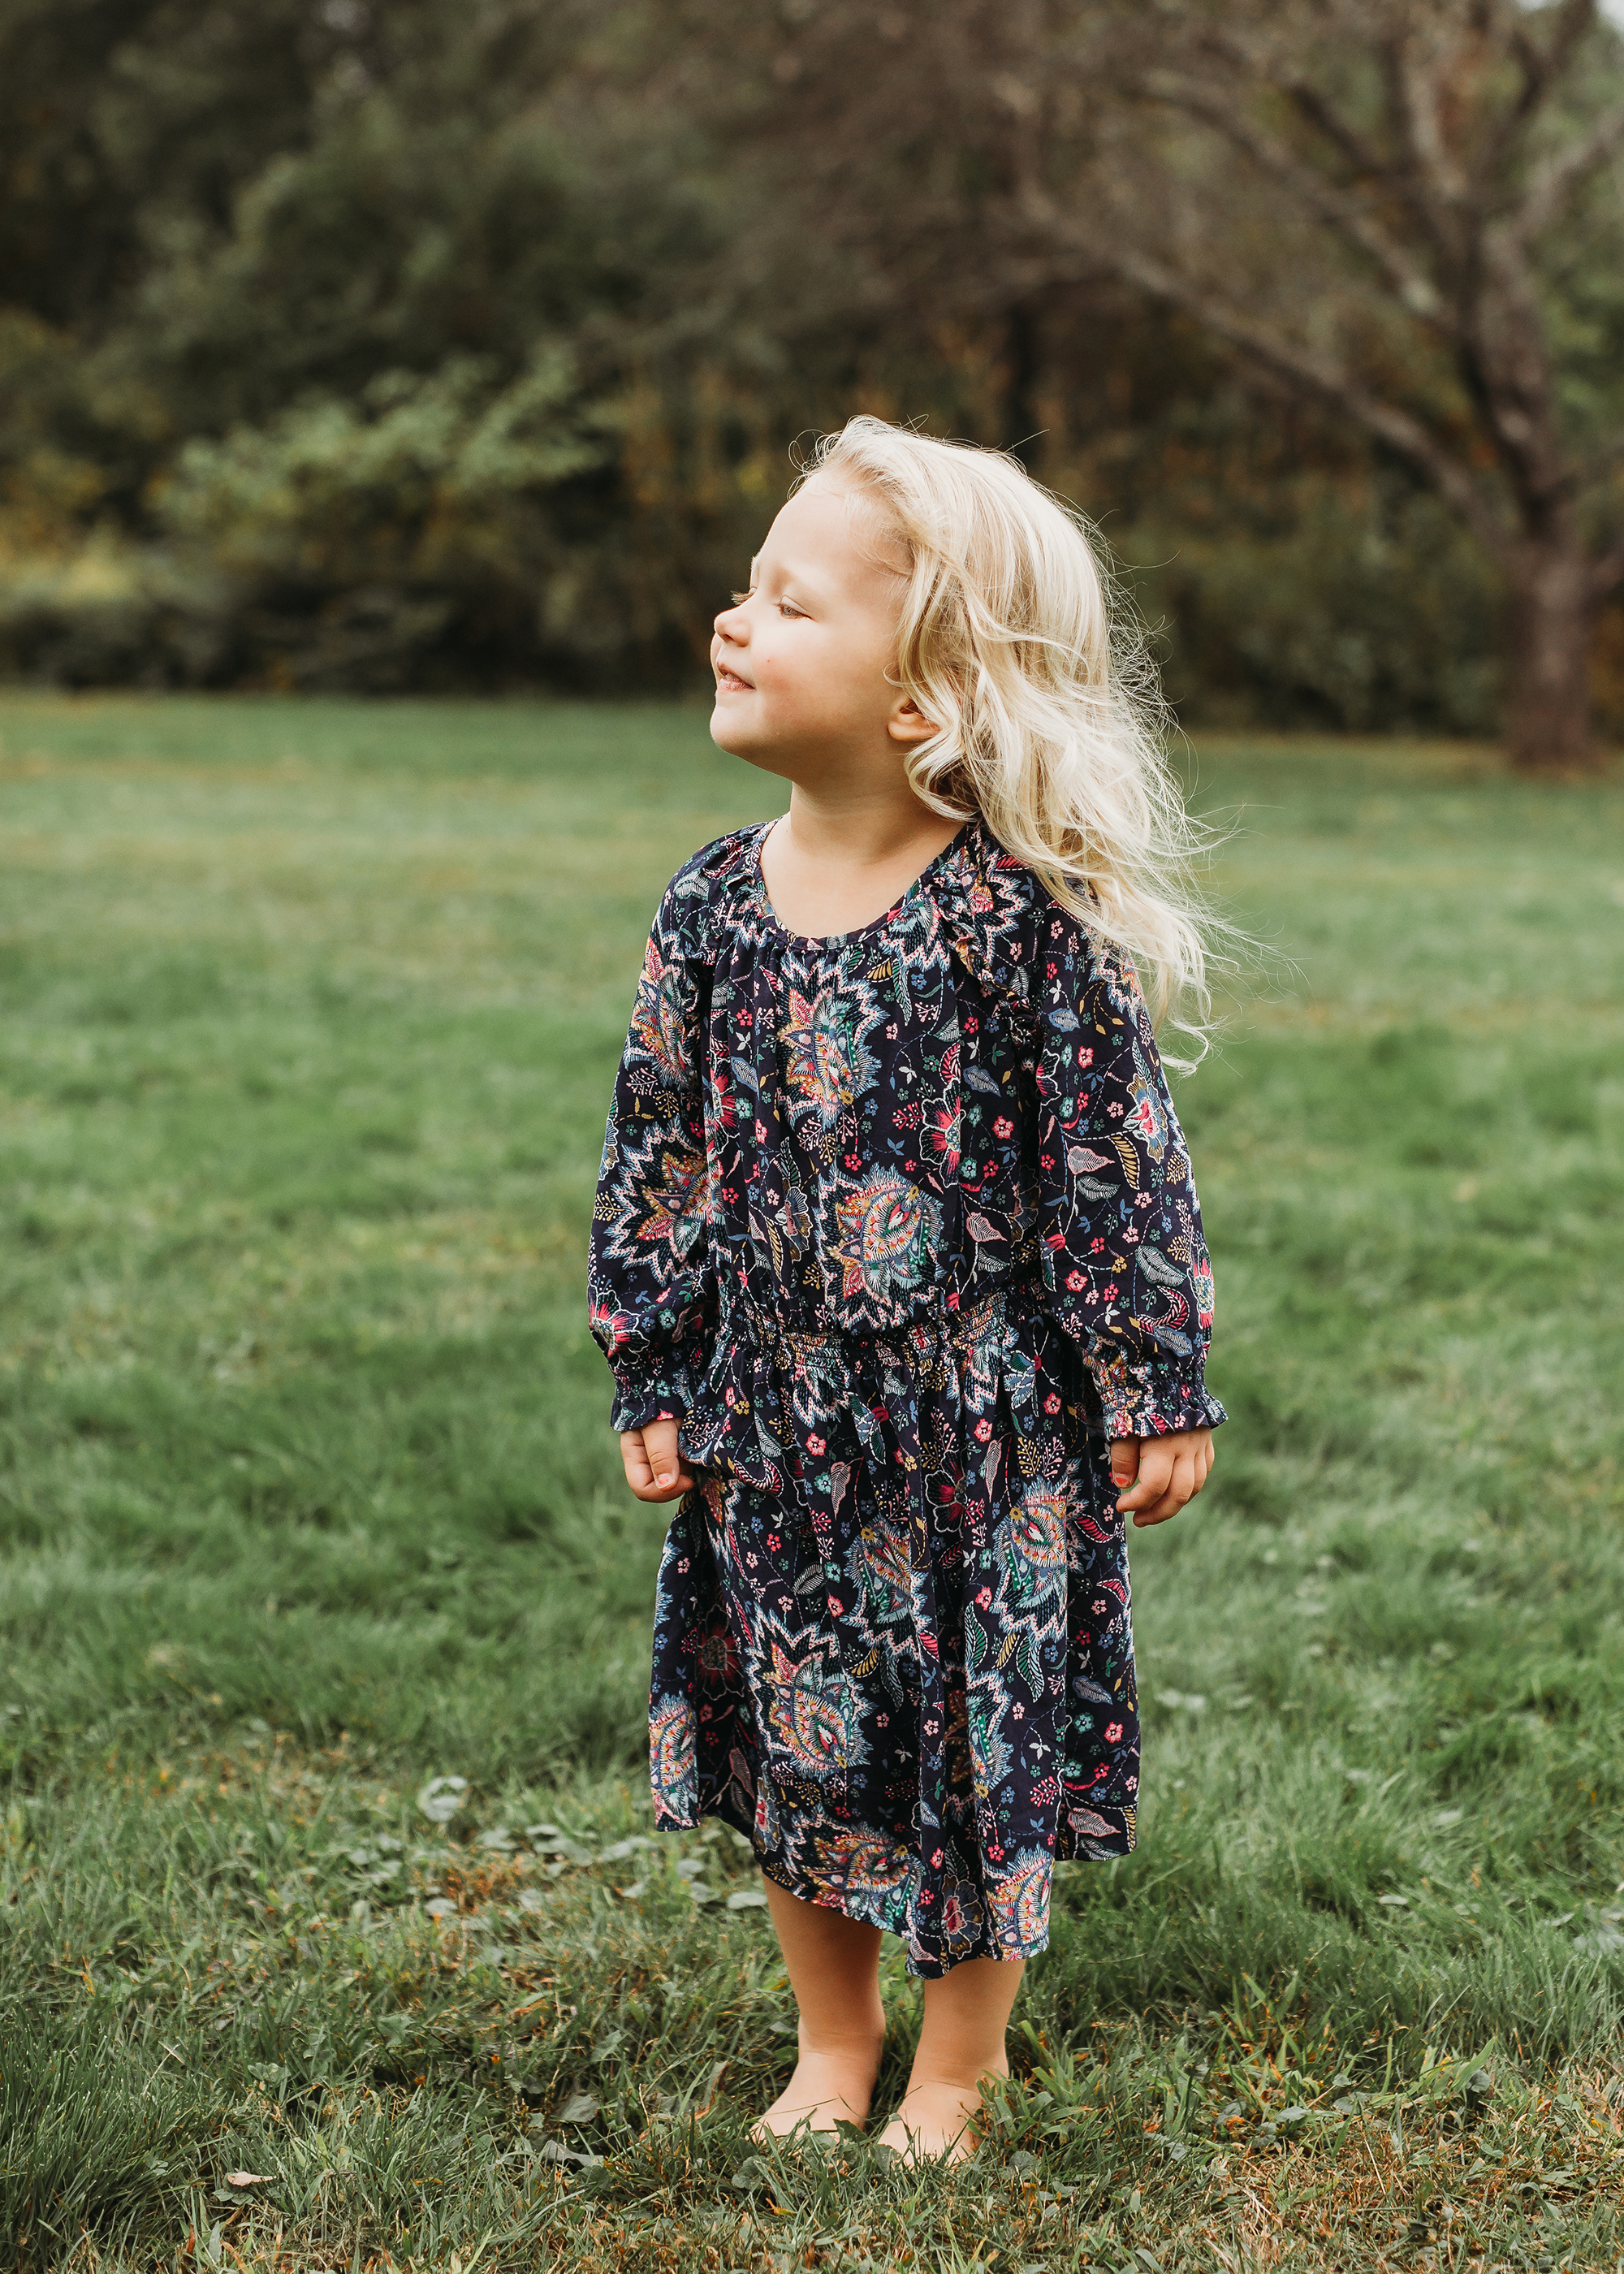 Toddler girl in boho dress for Sudbury family portraits. Boston family photographer, natural light, candid.